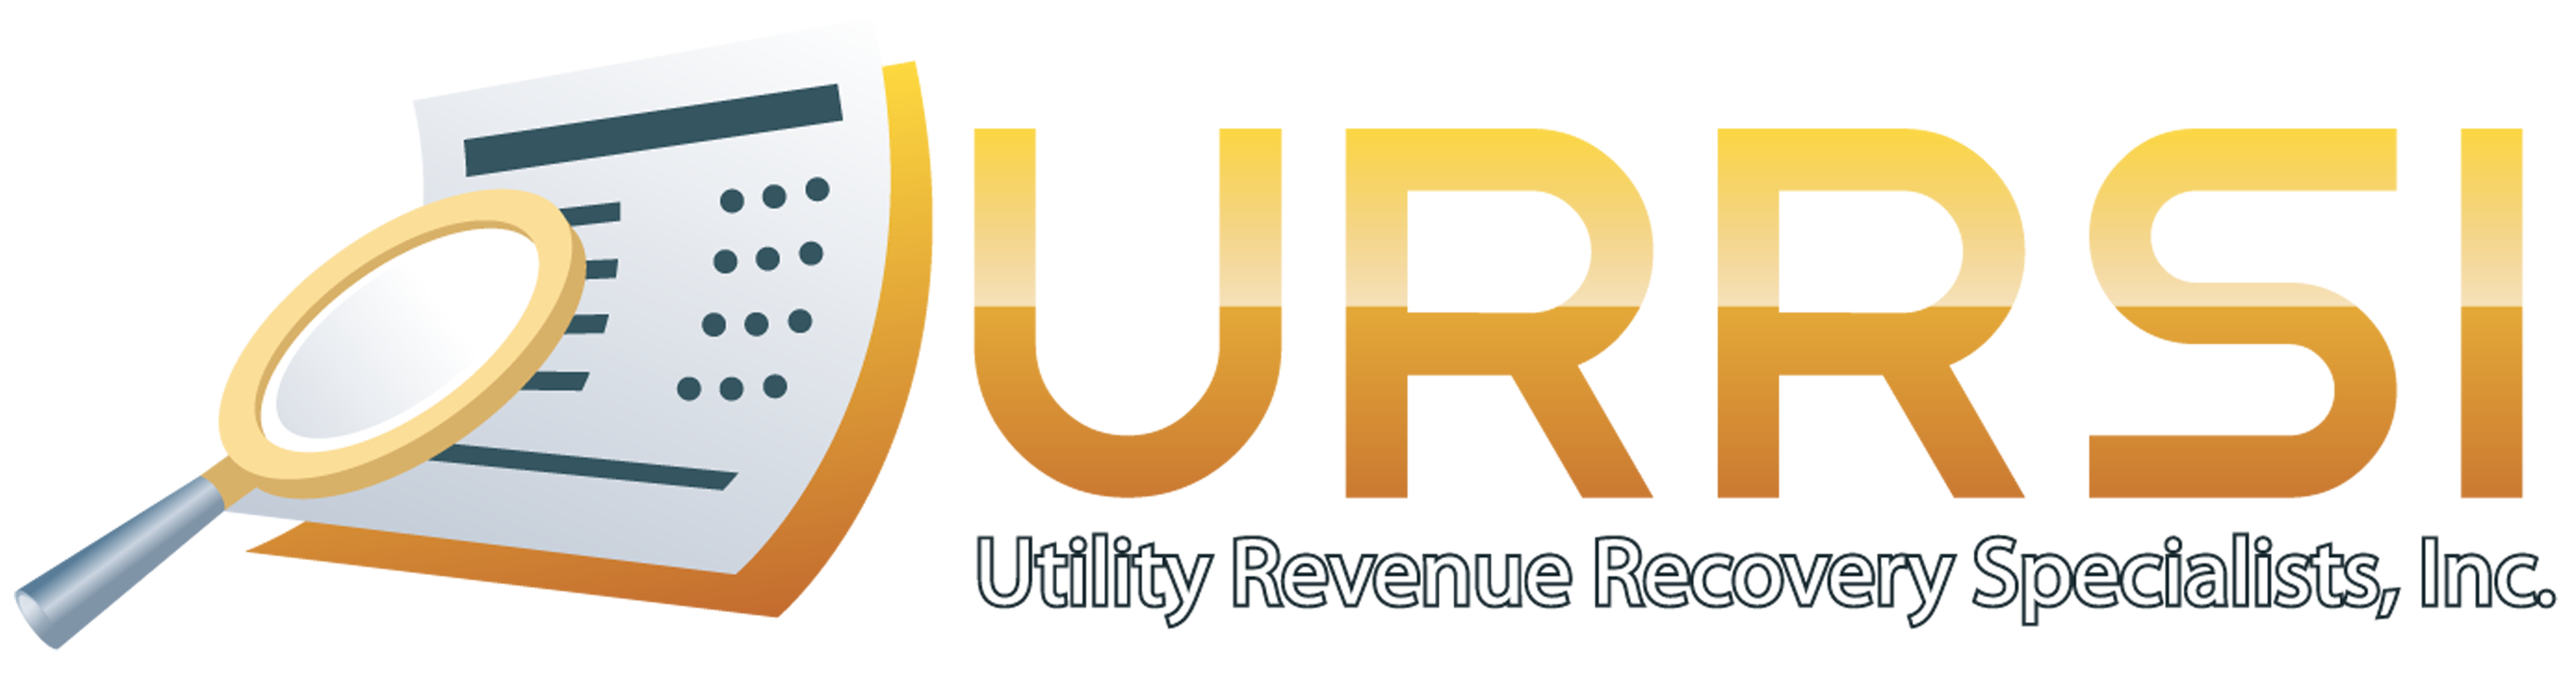 utility revenue recovery specialists inc about us utility bill